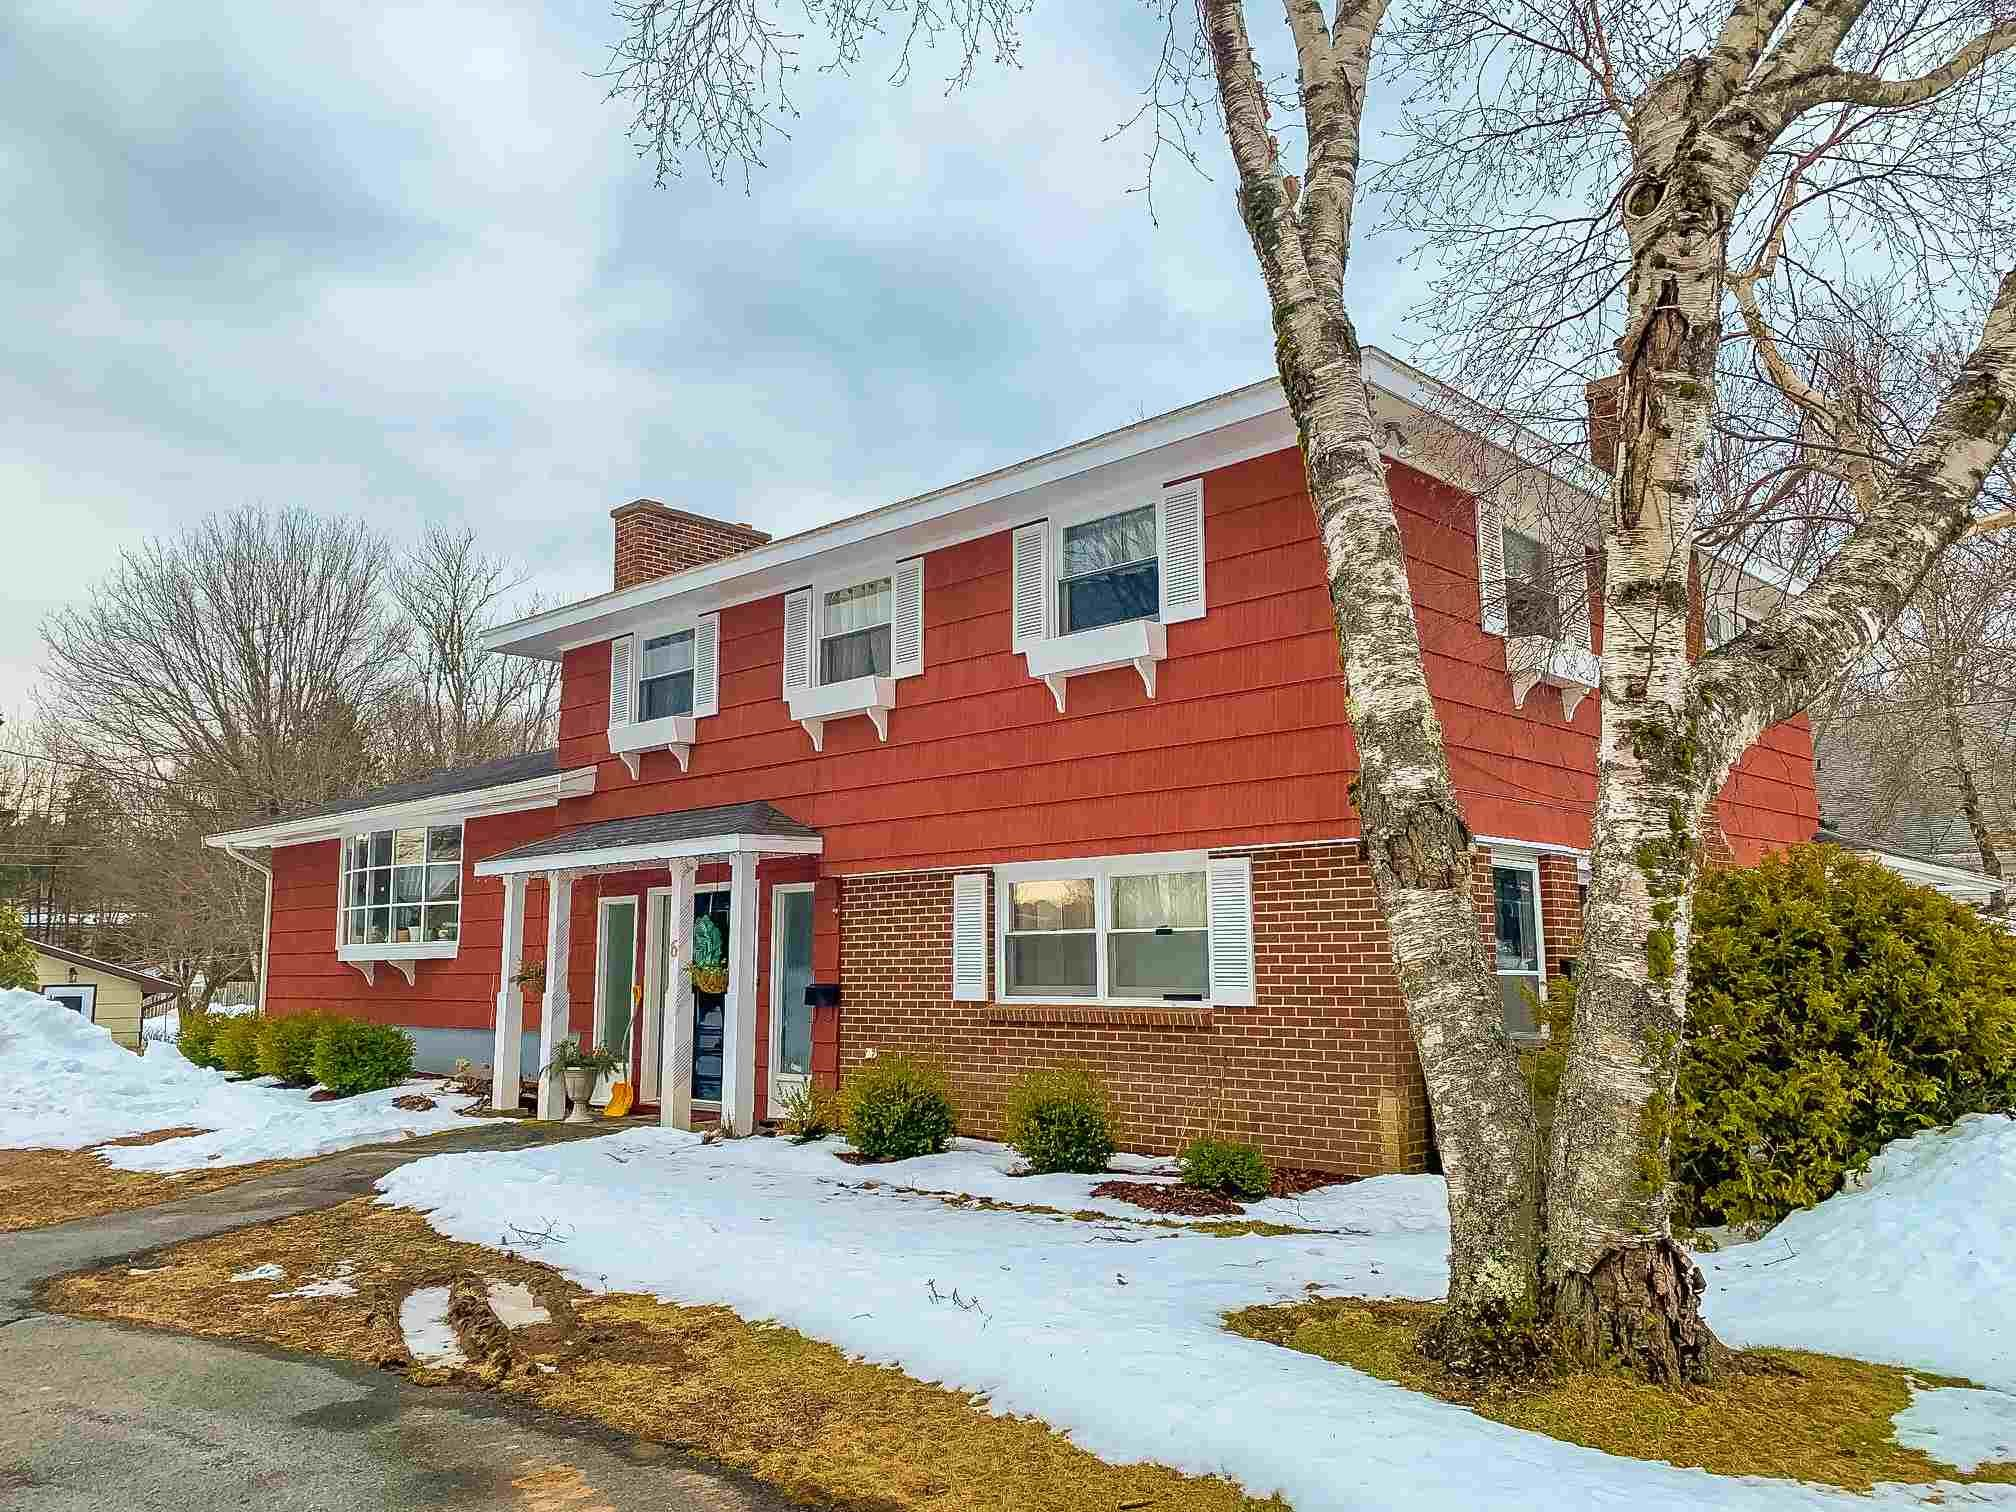 Main Photo: 6 Medway Street in Bridgewater: 405-Lunenburg County Residential for sale (South Shore)  : MLS®# 202103289